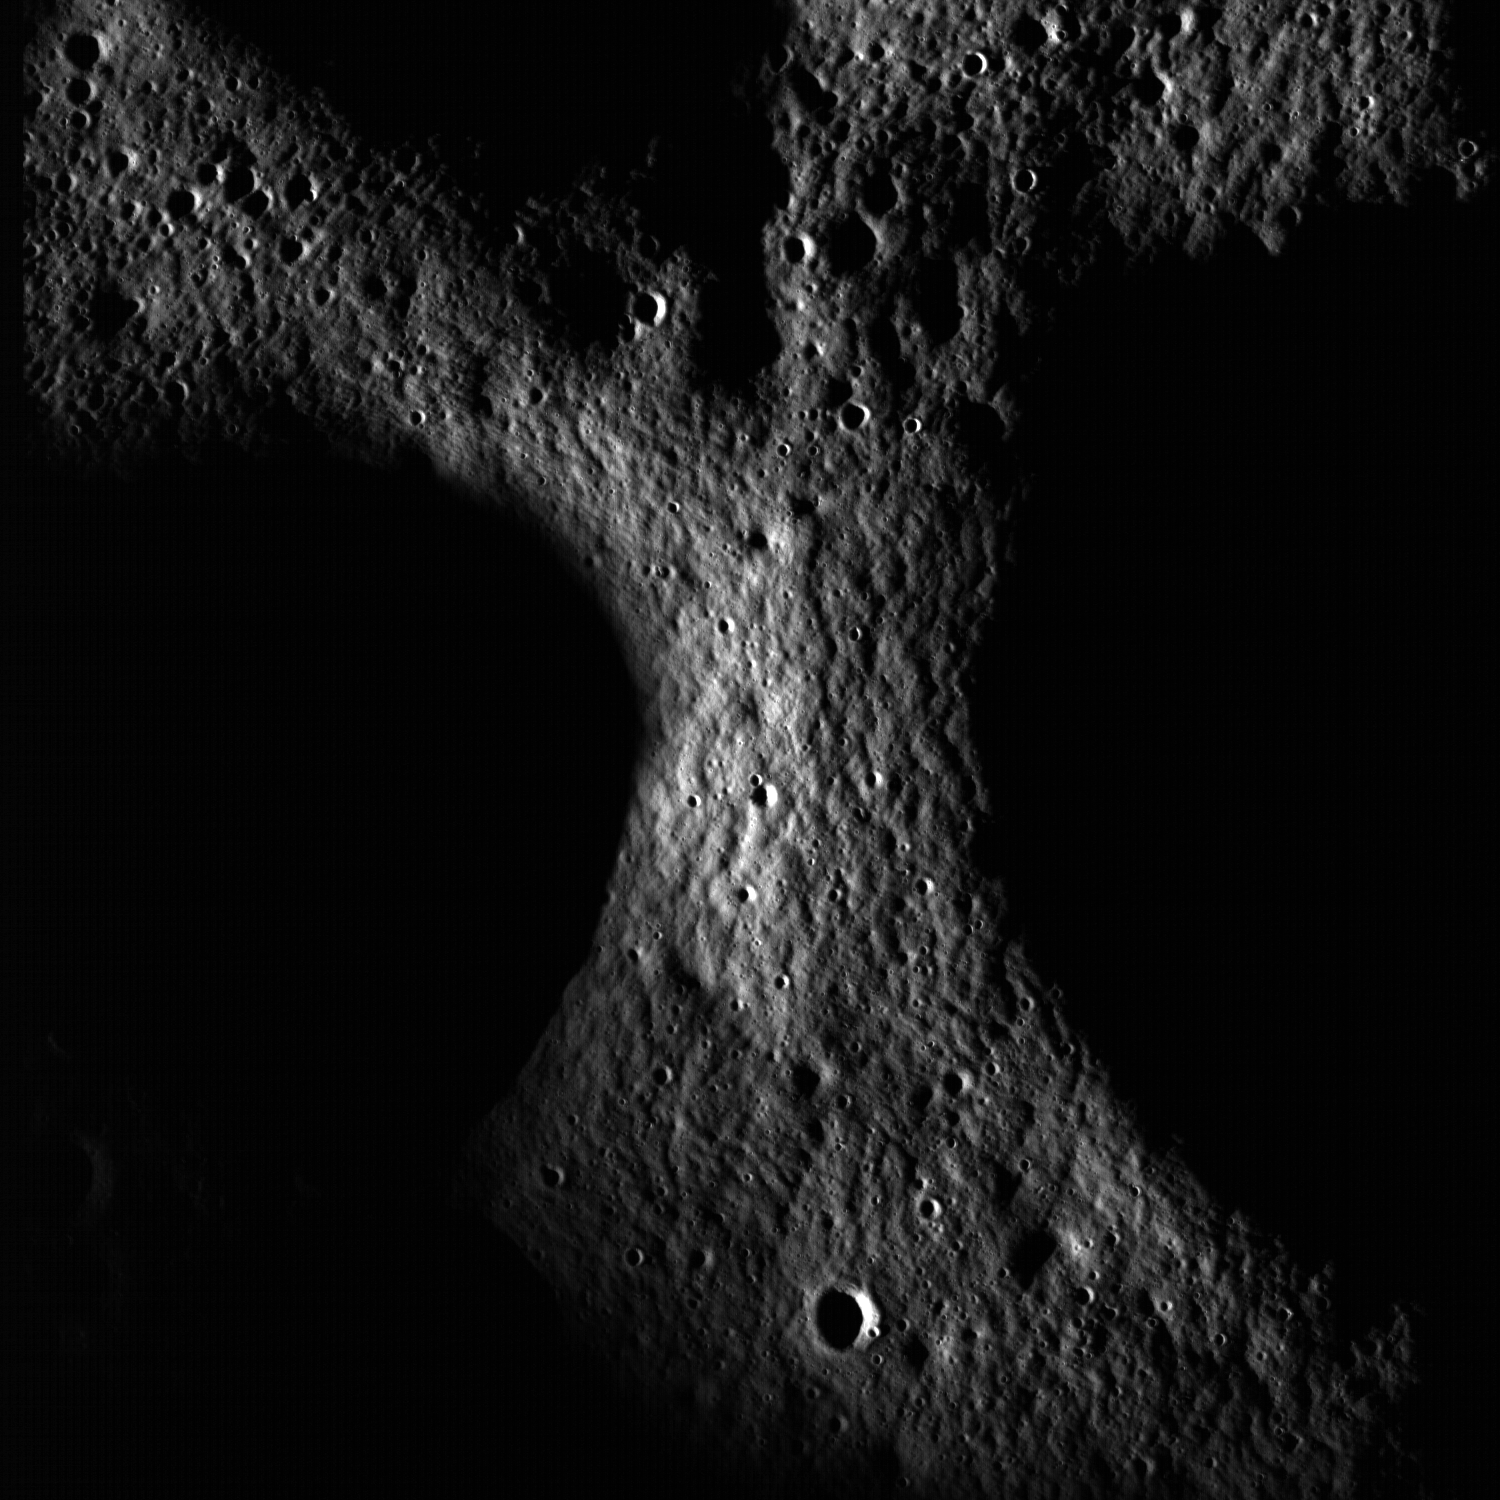 Exciting New Images Lunar Reconnaissance Orbiter Camera